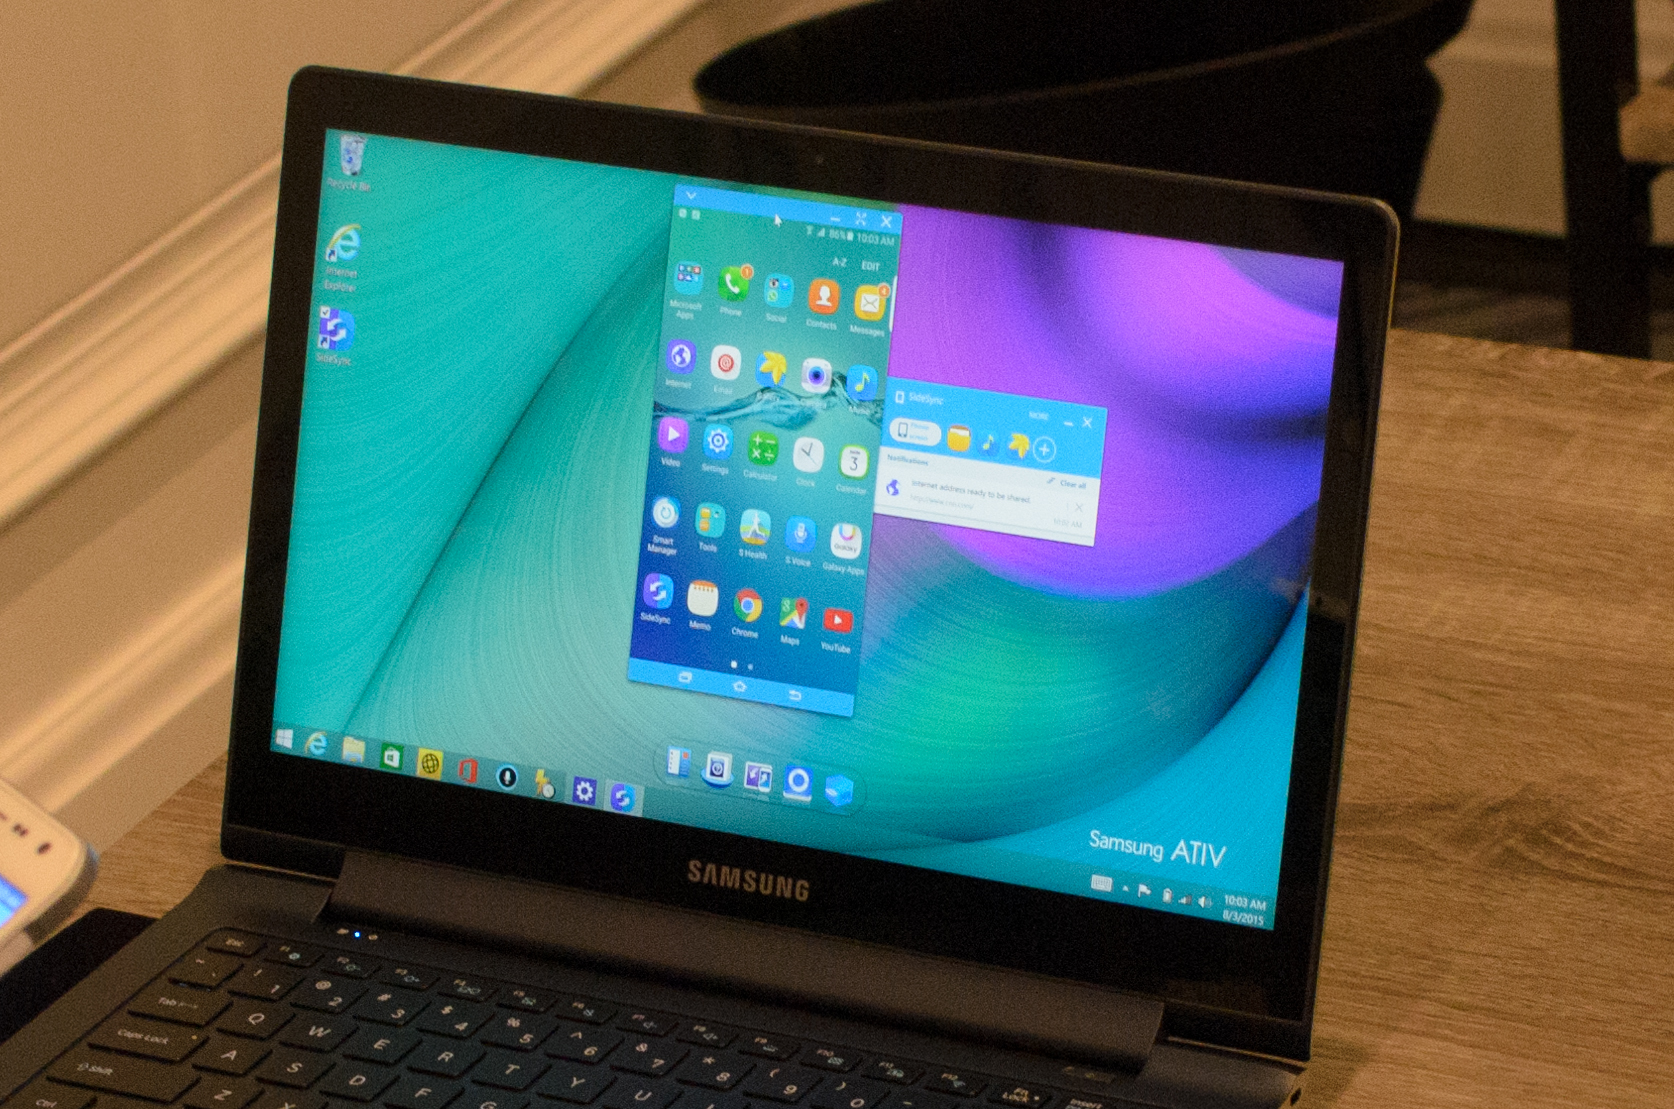 Software, Samsung Pay, and Accessories - Hands On With the